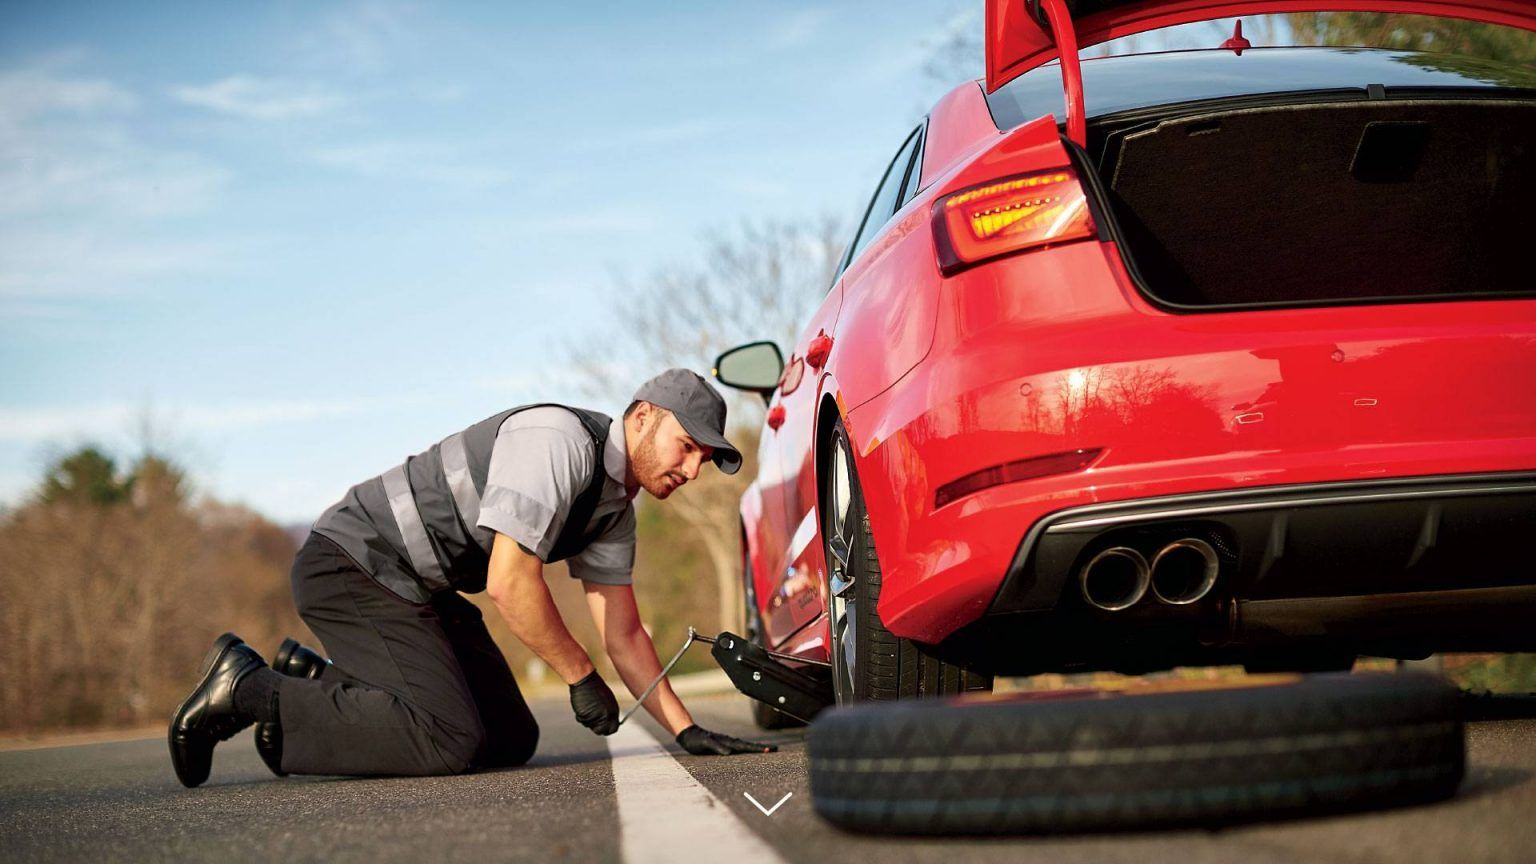 Are you looking for the Best Emergency Roadside Assistance